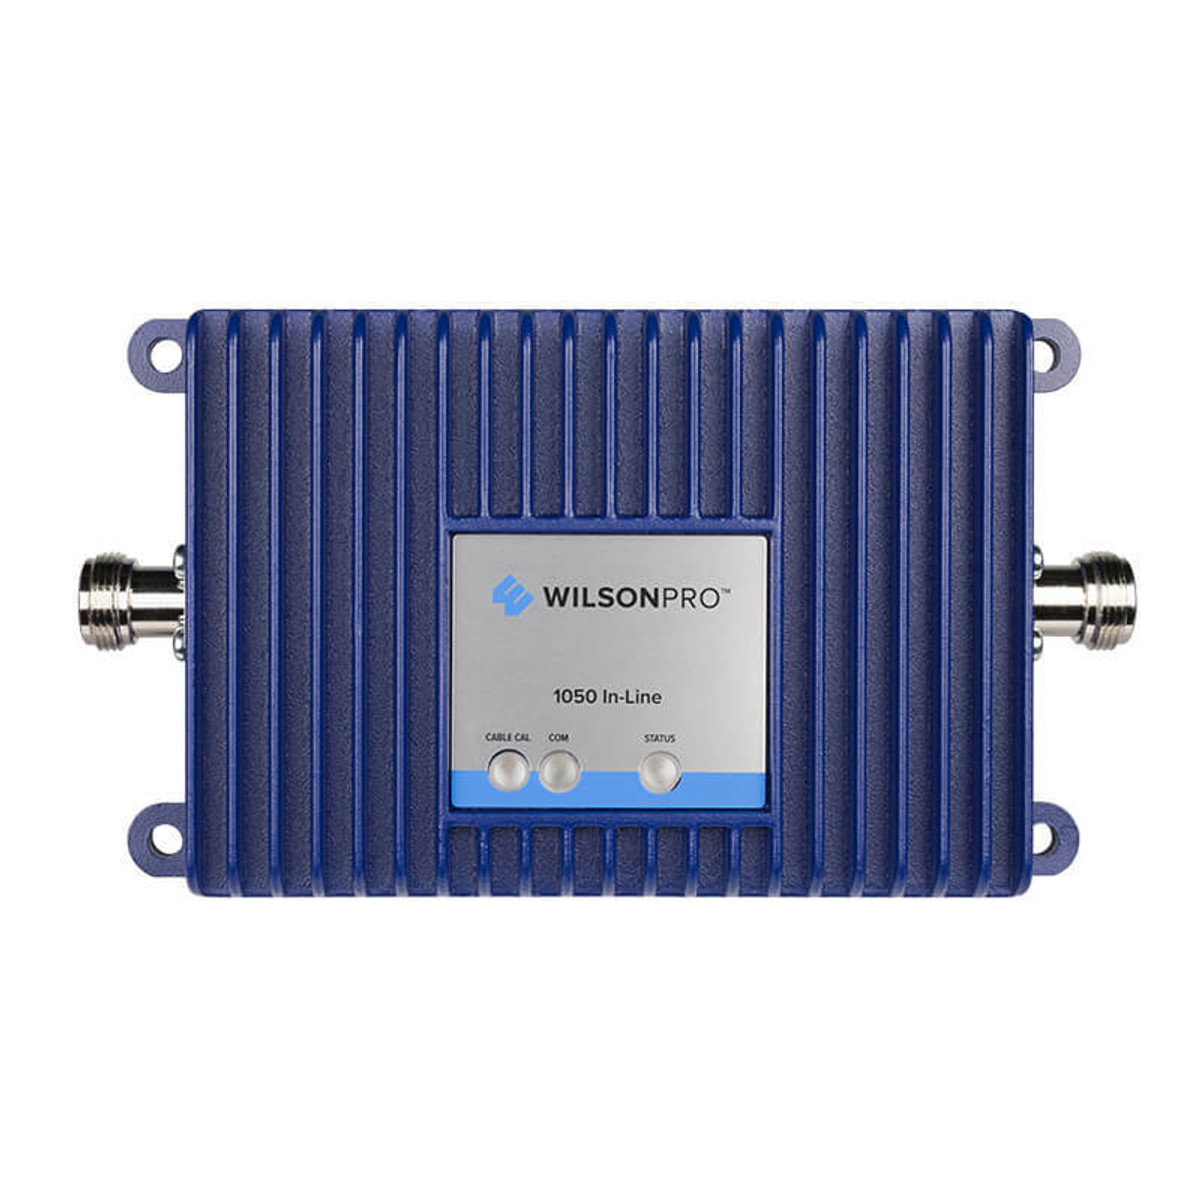 Wilson Pro Wilson Pro 1050 Commercial Signal Booster Kit or 460230